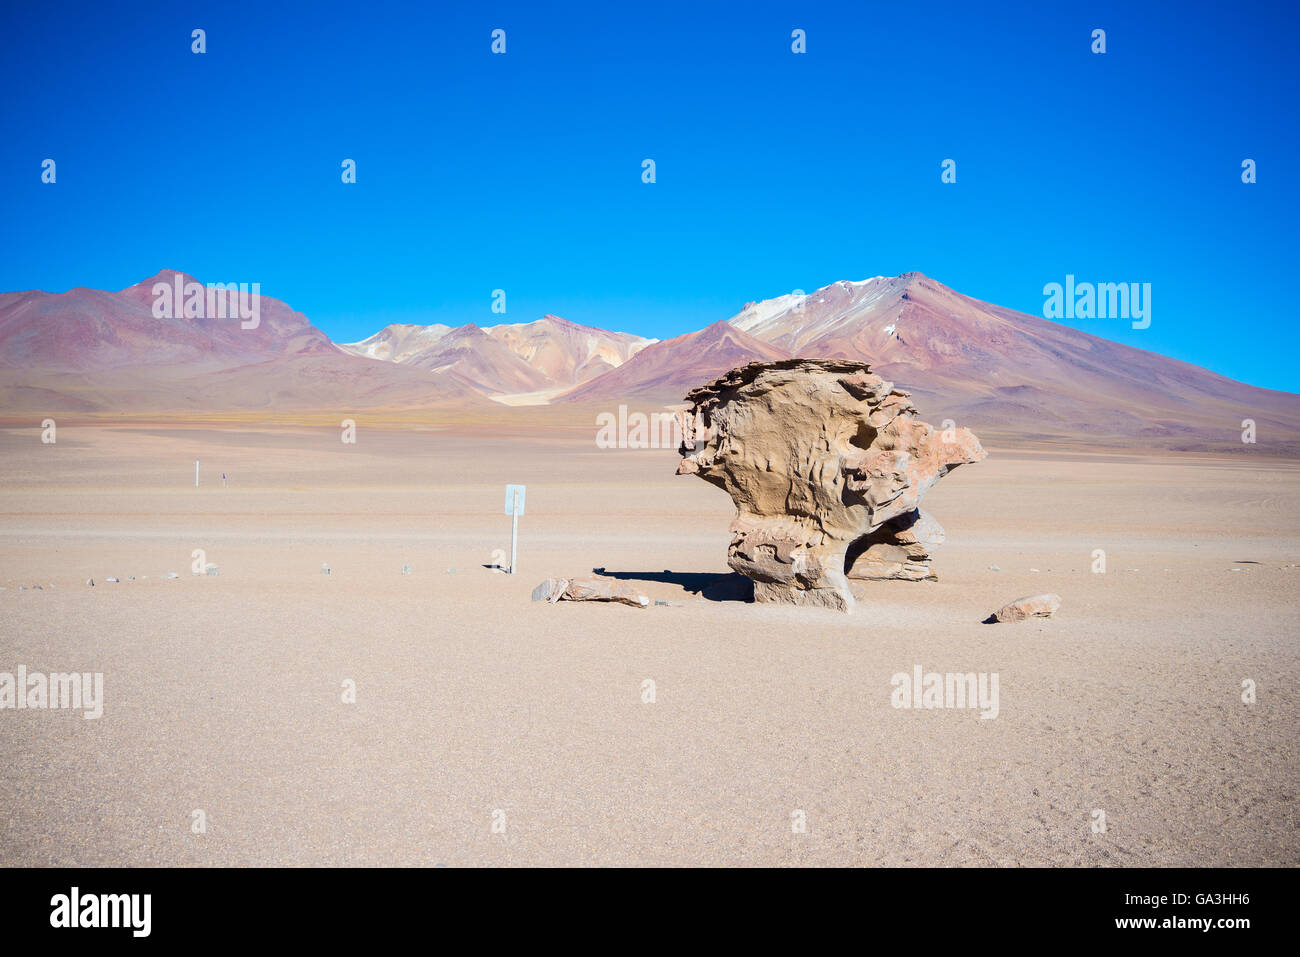 Sandy desert and scenic rock formation, known as 'Rock Tree', on the Andean highlands. Road trip to the - Stock Image